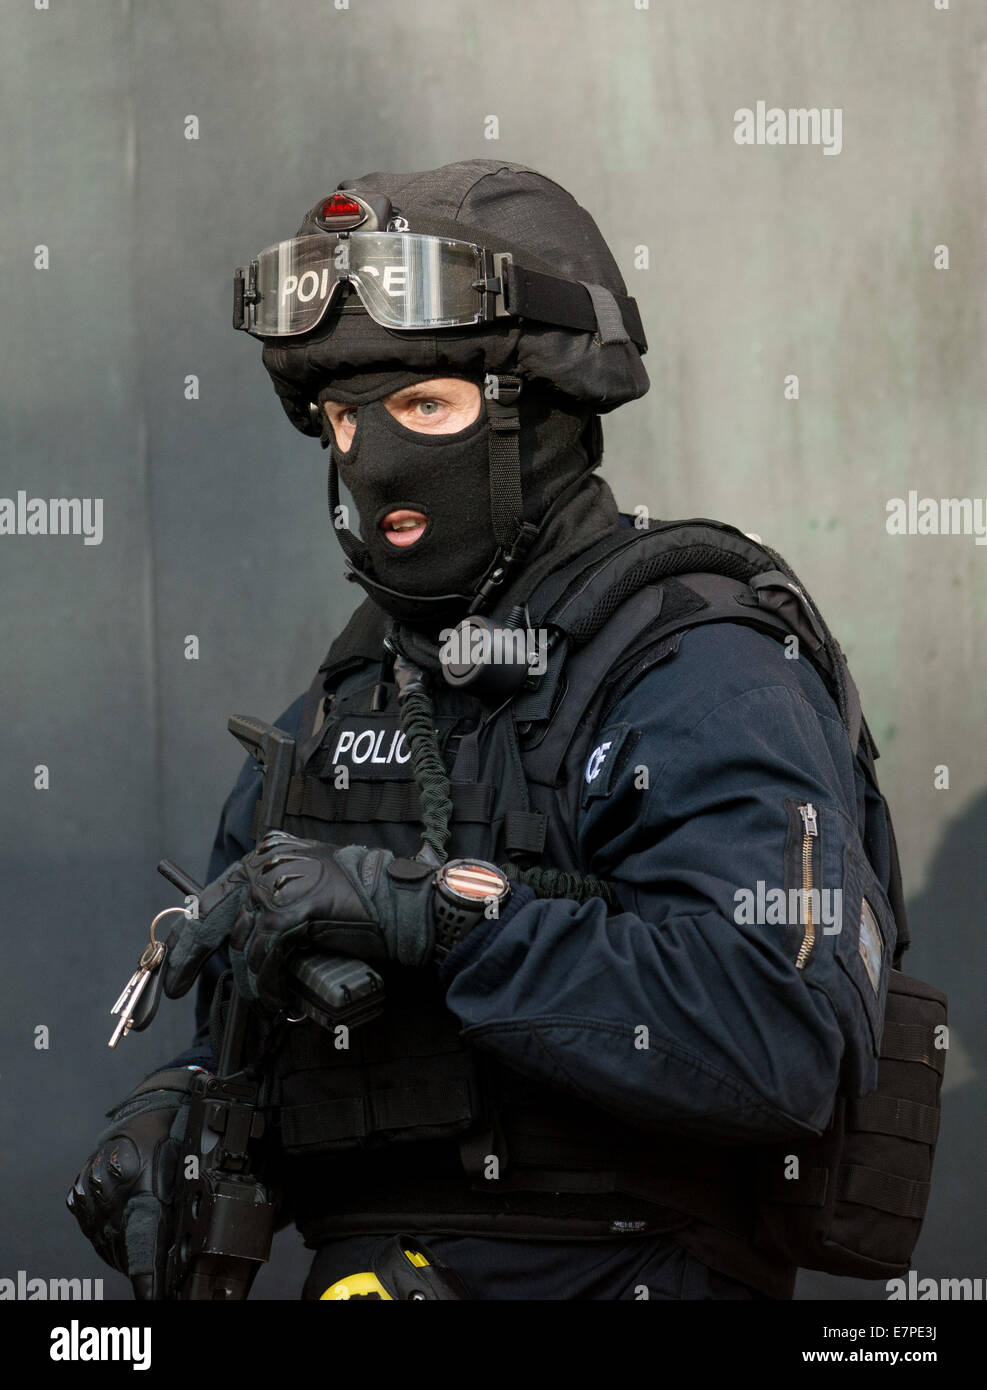 Glasgow, UK. 22nd Sep, 2014. Specialist Firearms officers from the Tactical Firearms Unit attend a siege in Boyd - Stock Image